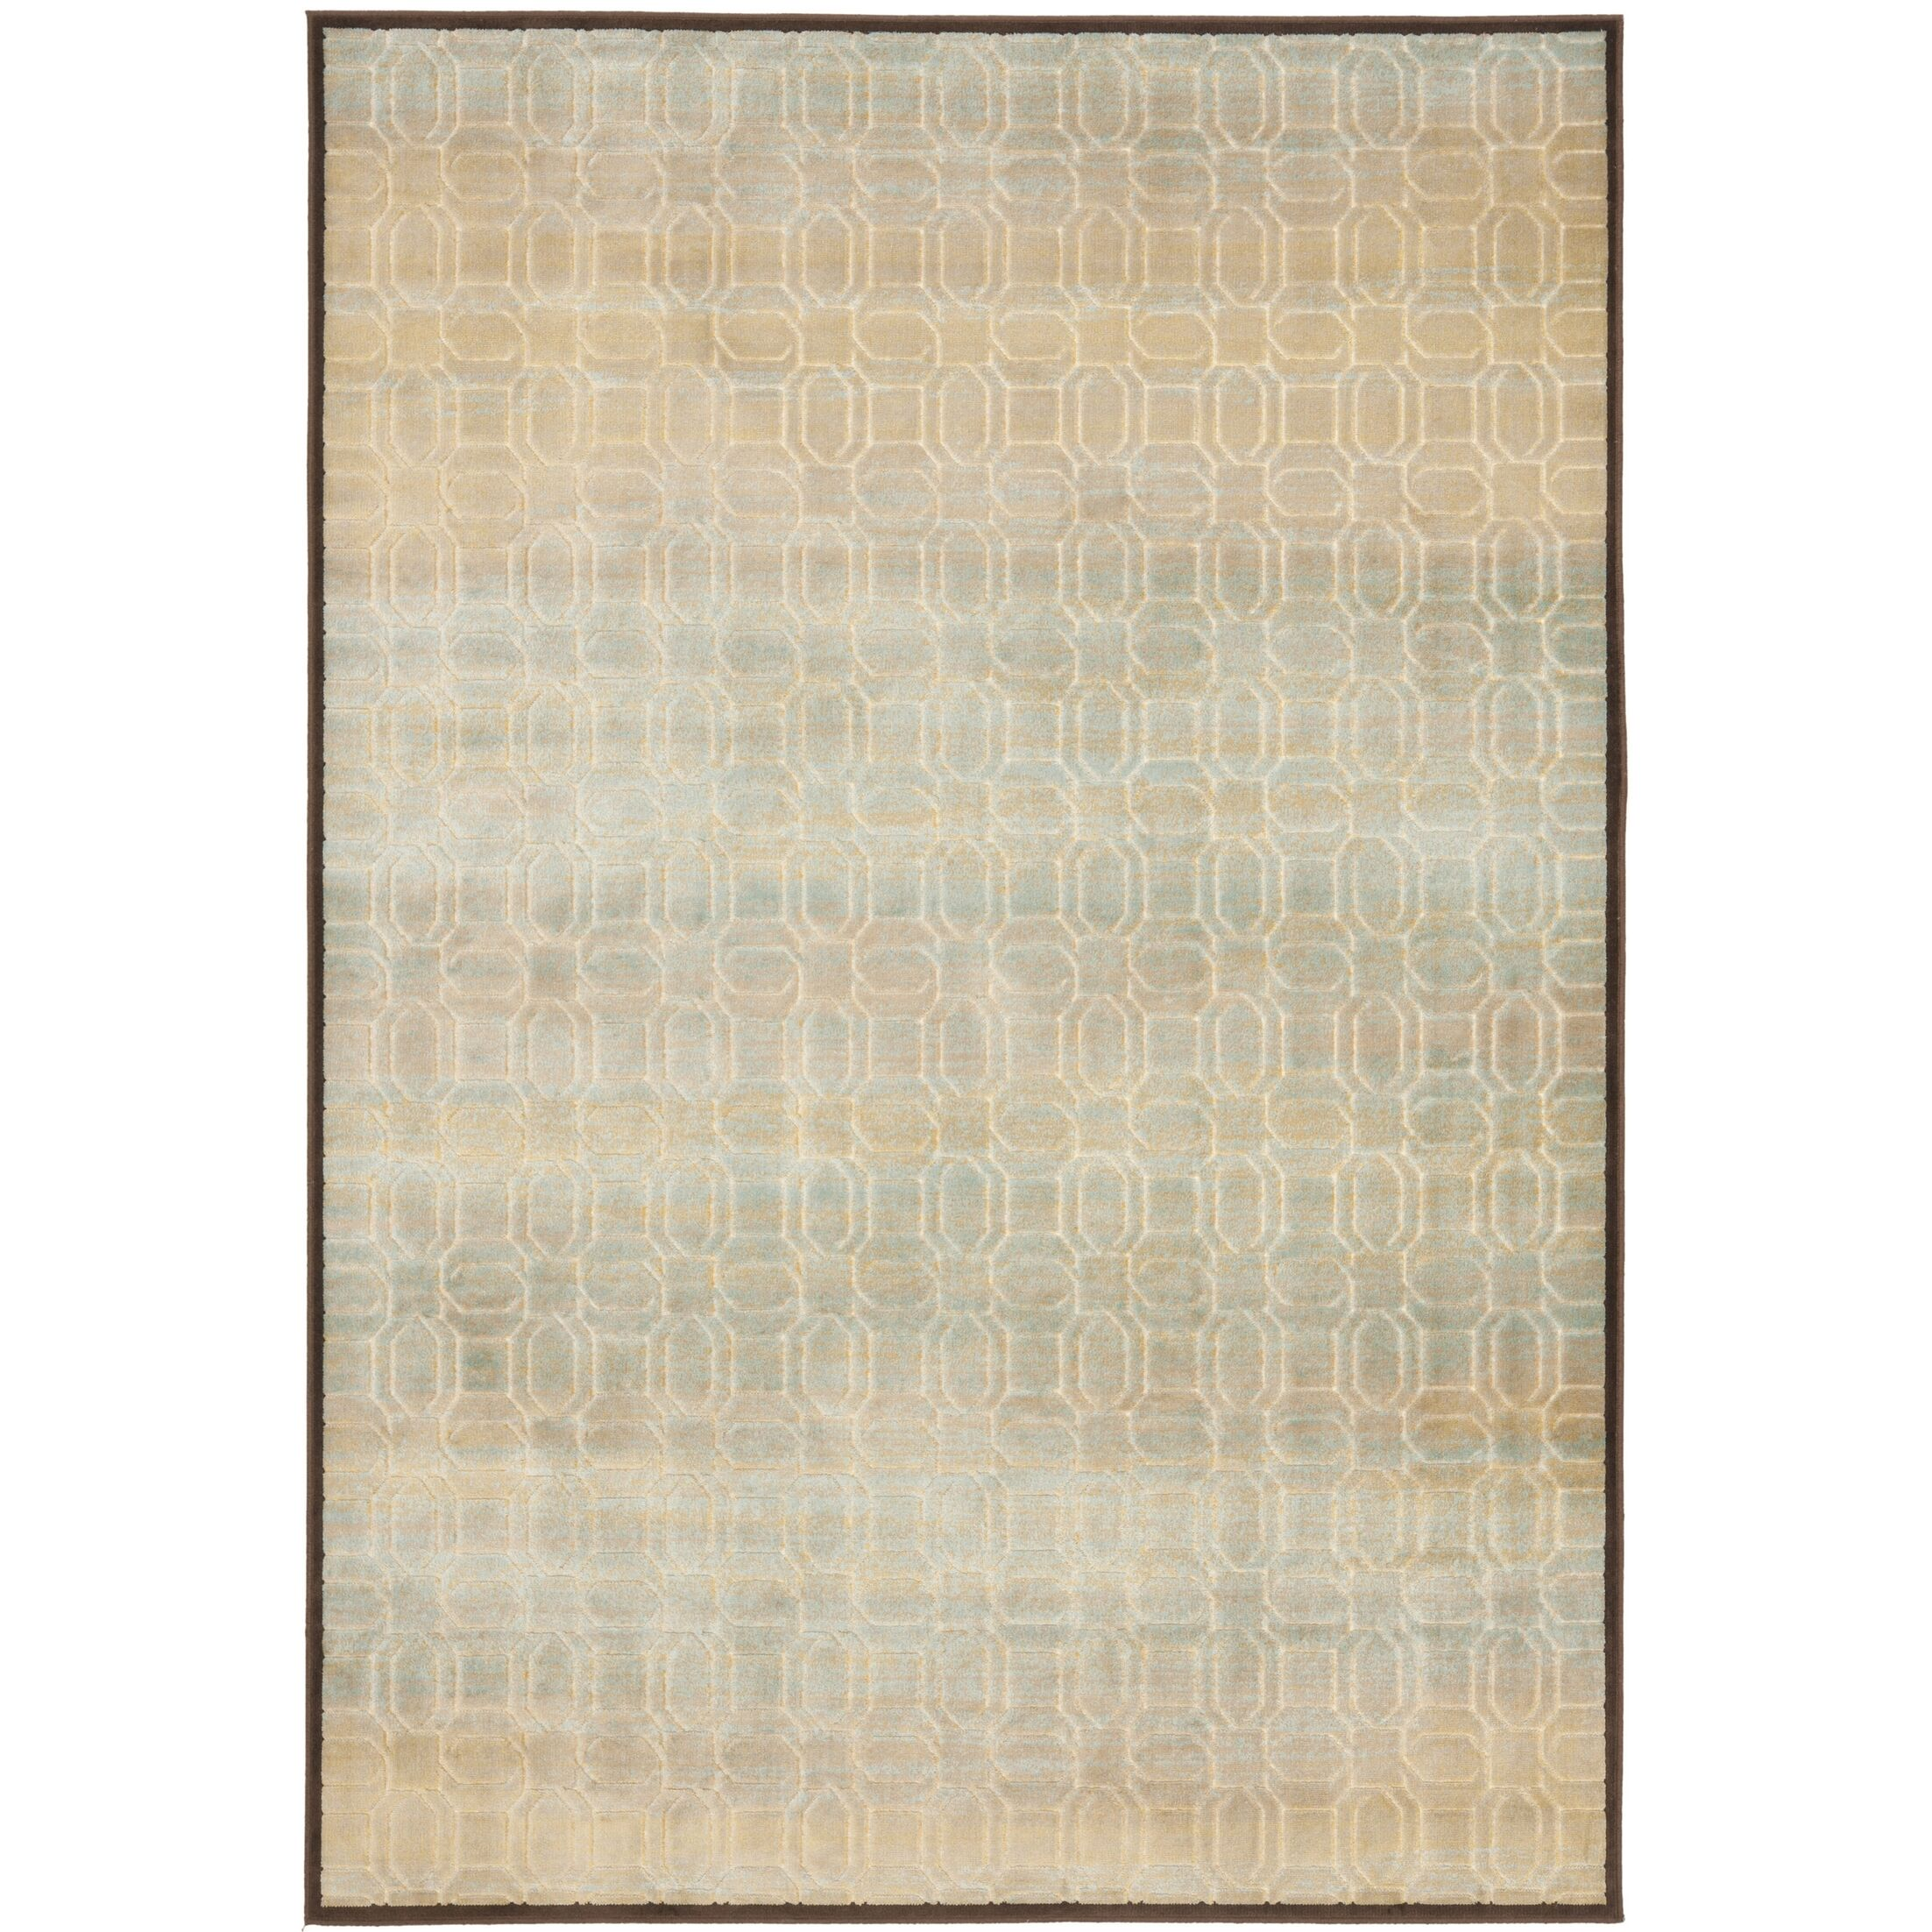 Saint-Michel Creme/Brown Rug Rug Size: Runner 2'5